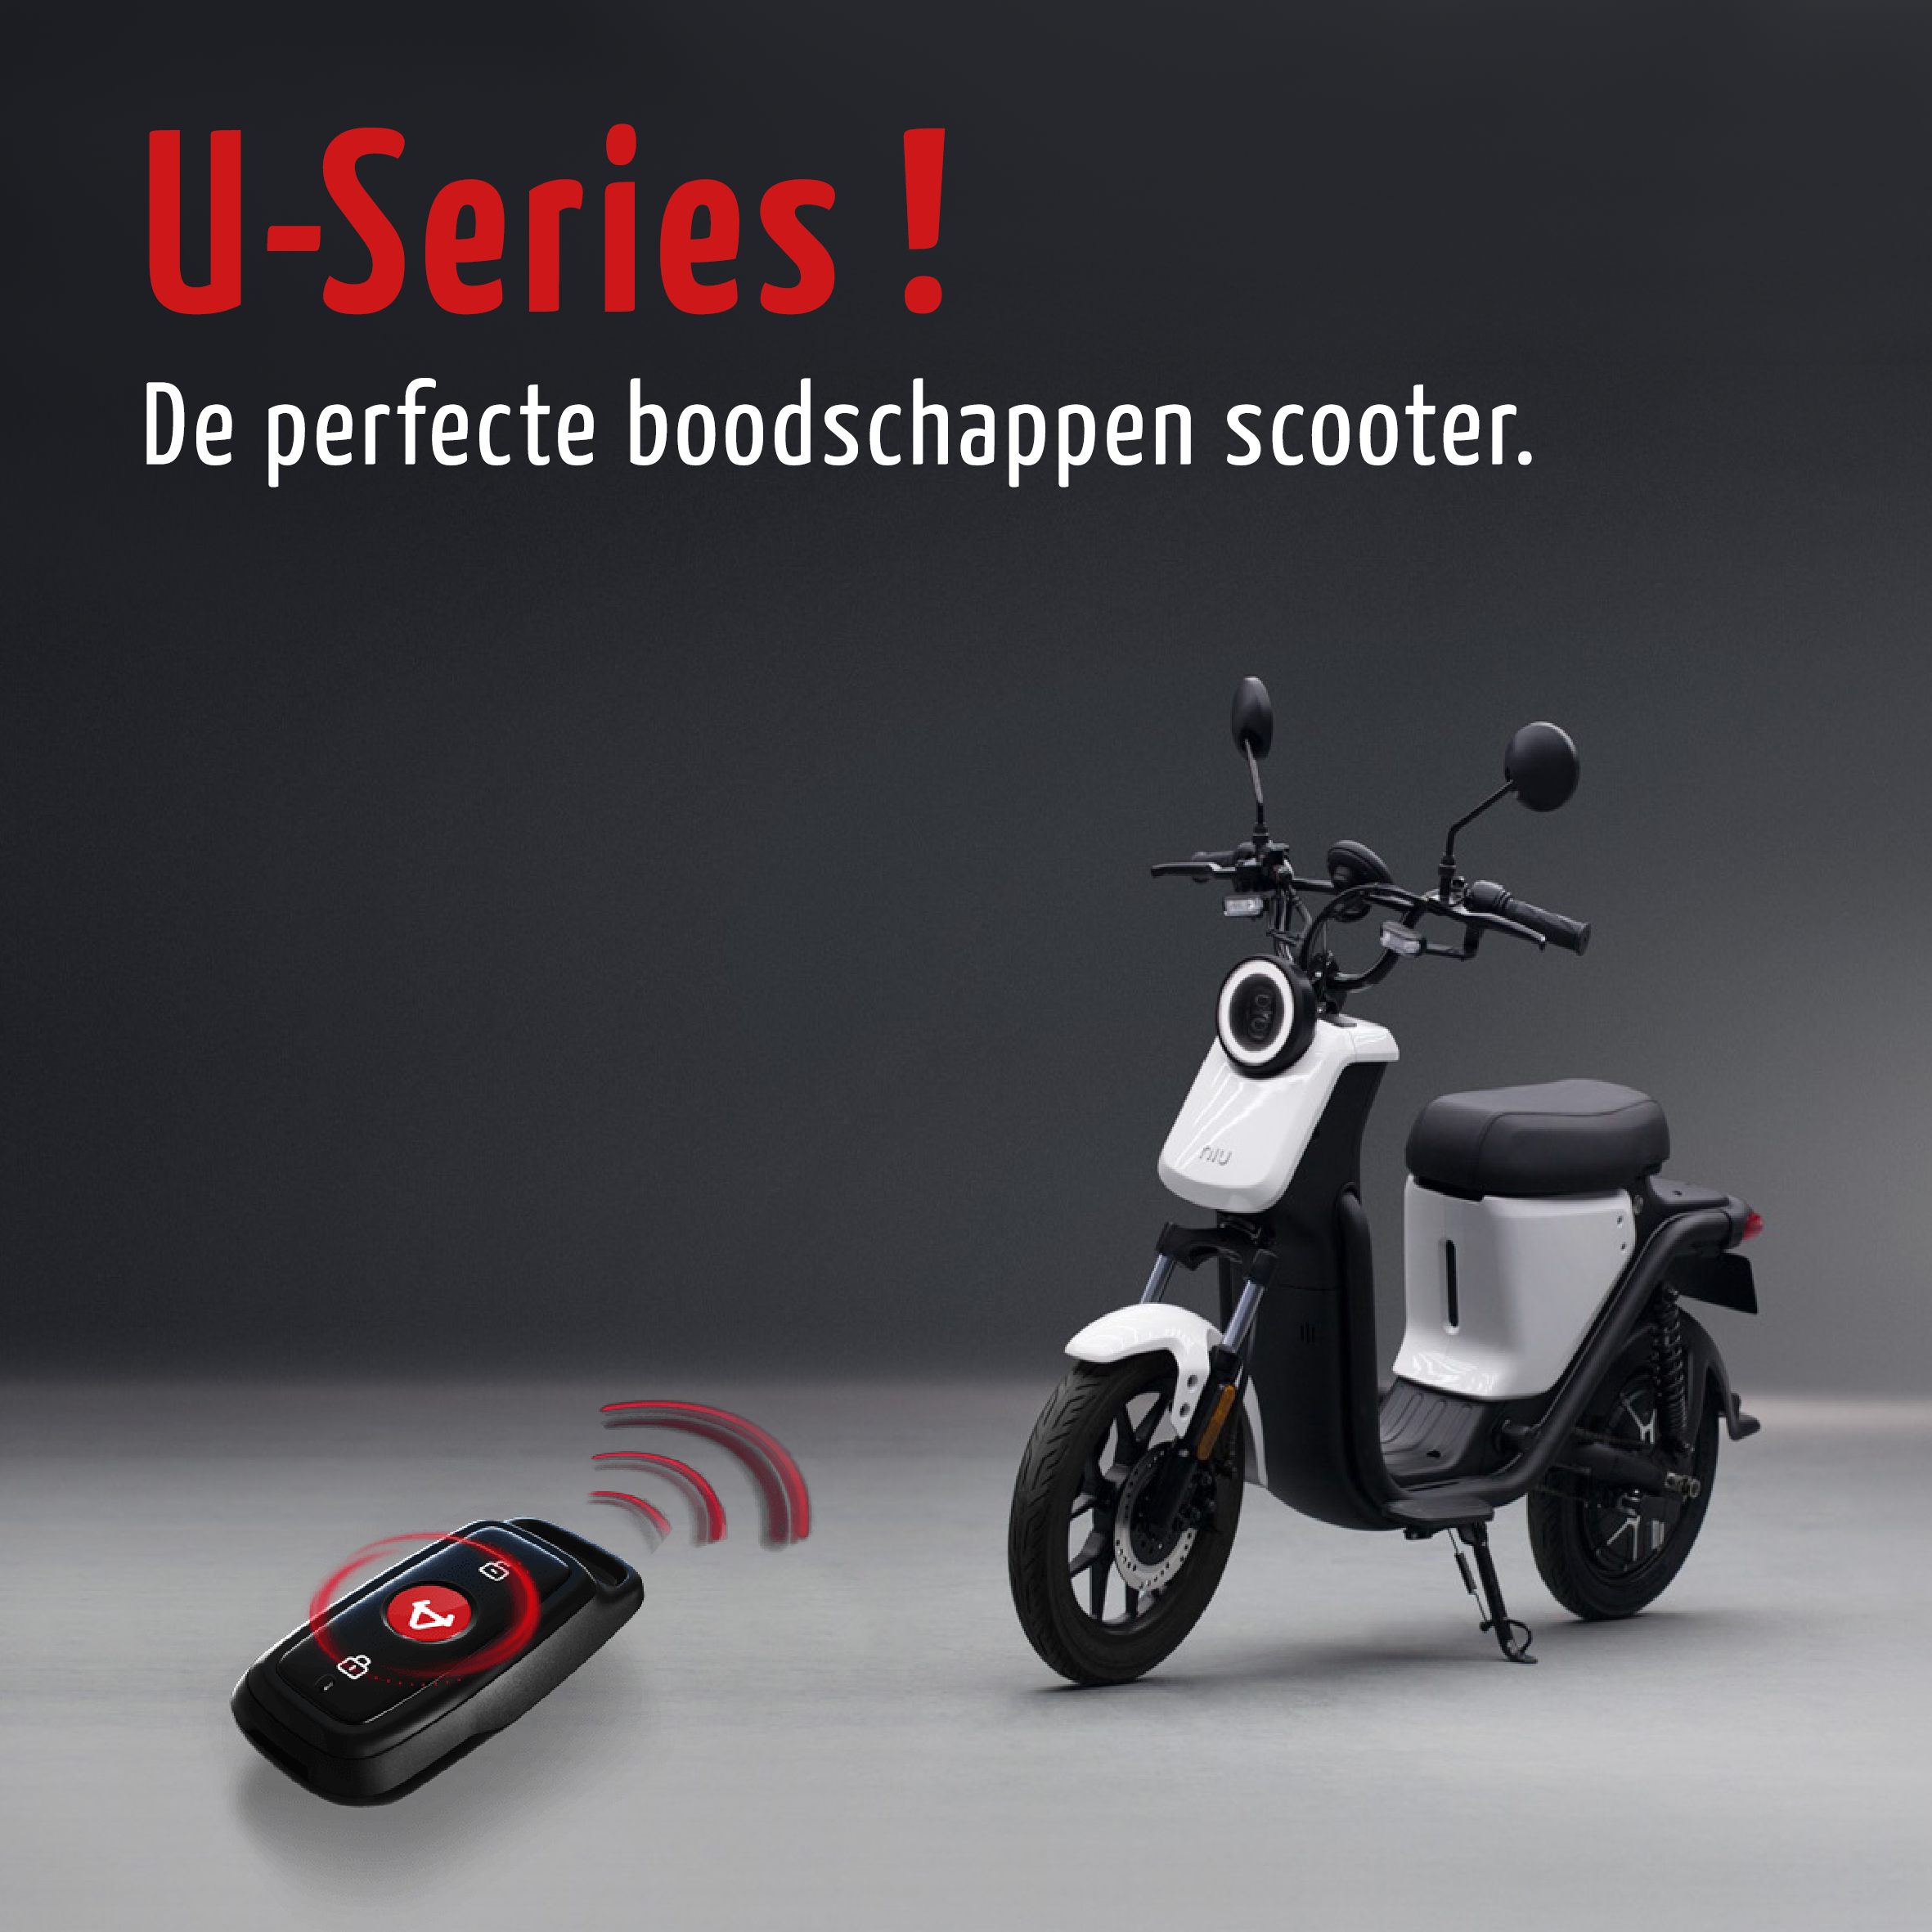 Niu U-Series, nu in onze showroom!